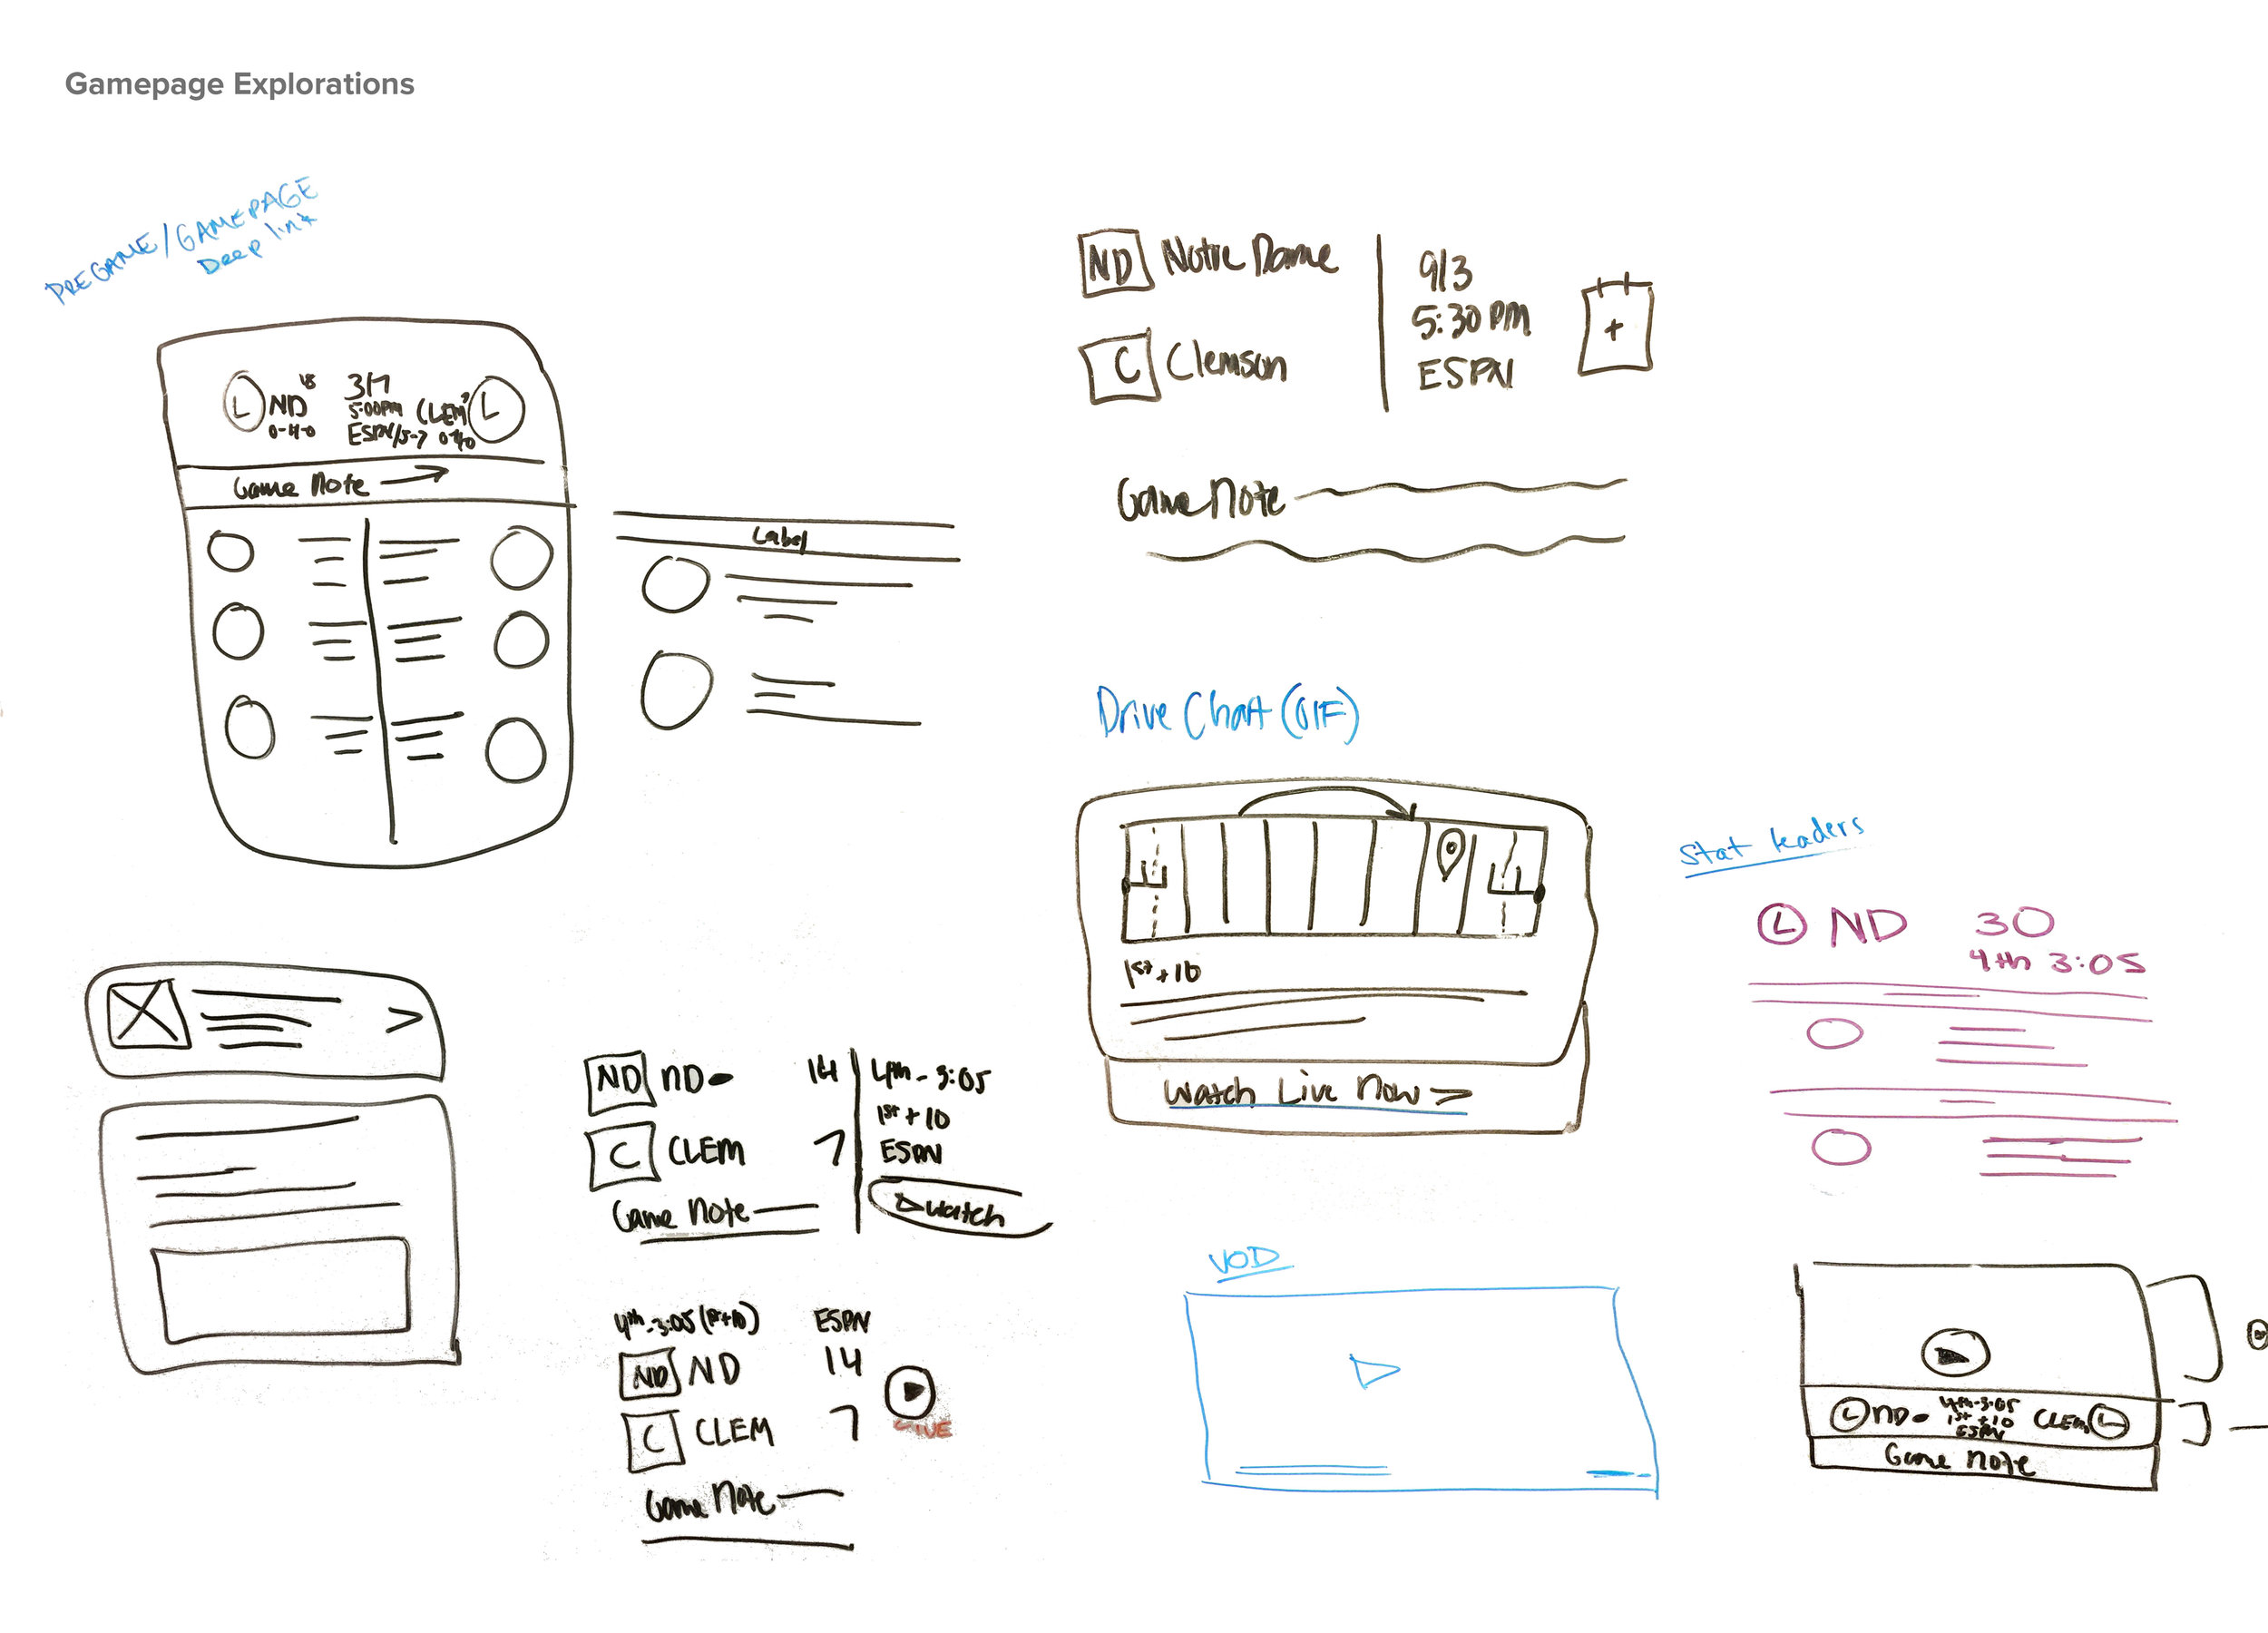 wireframes-imessage.jpg